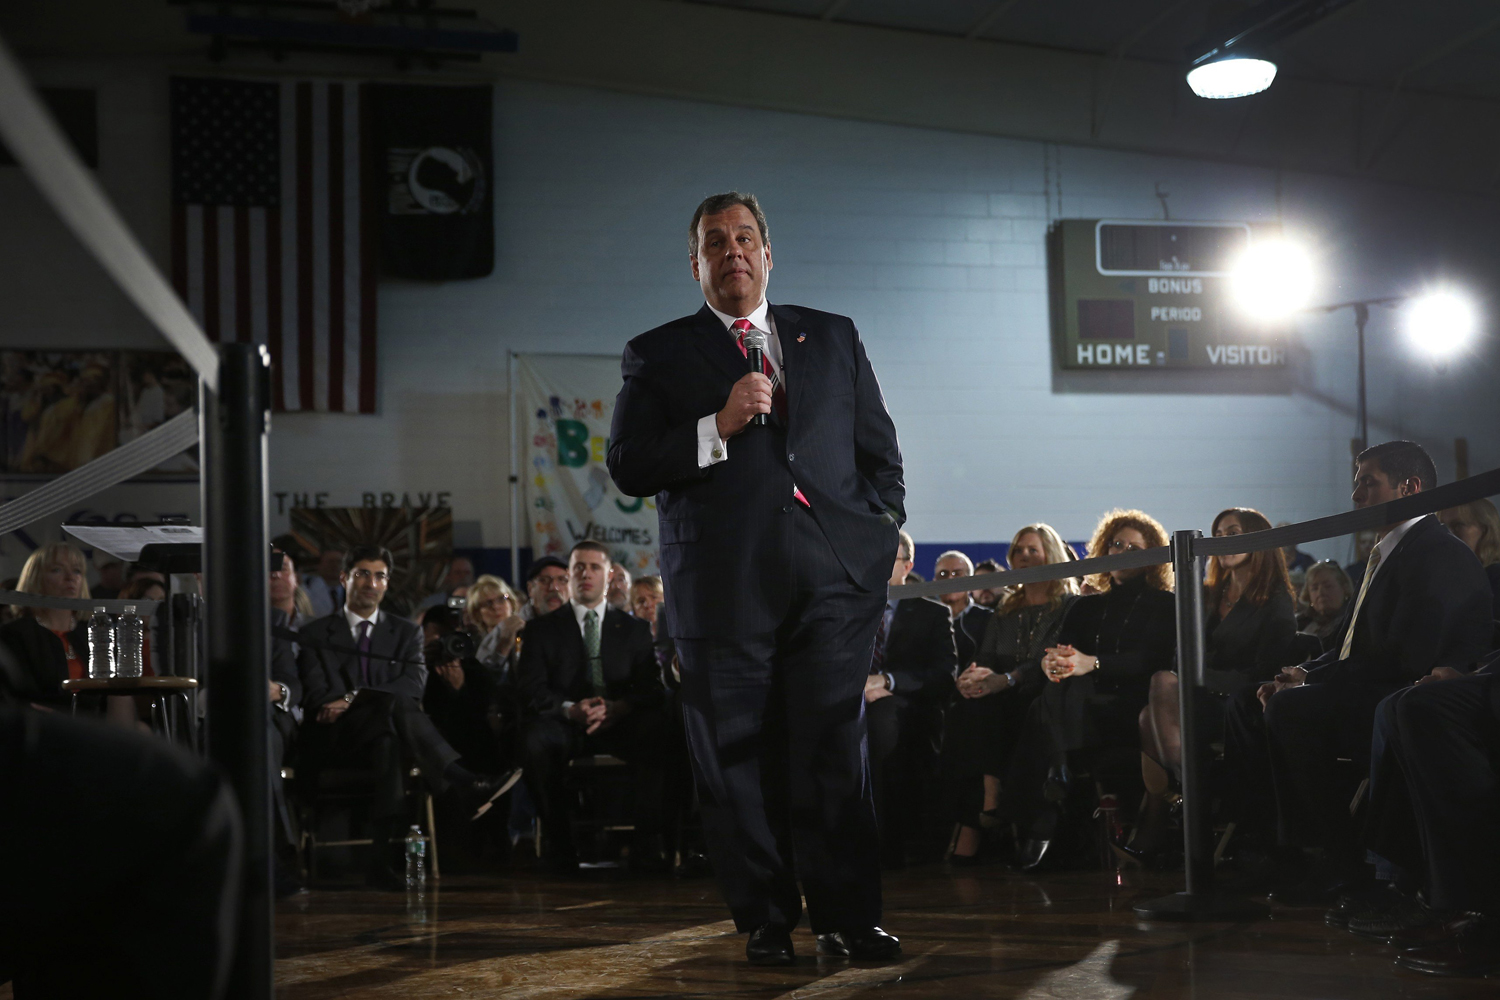 Mar. 25, 2014. New Jersey Governor Chris Christie speaks to local residents of Belmar, New Jersey, and other shore towns in Monmouth County during a town hall meeting to discuss federal funds for recovery from hurricane Sandy.